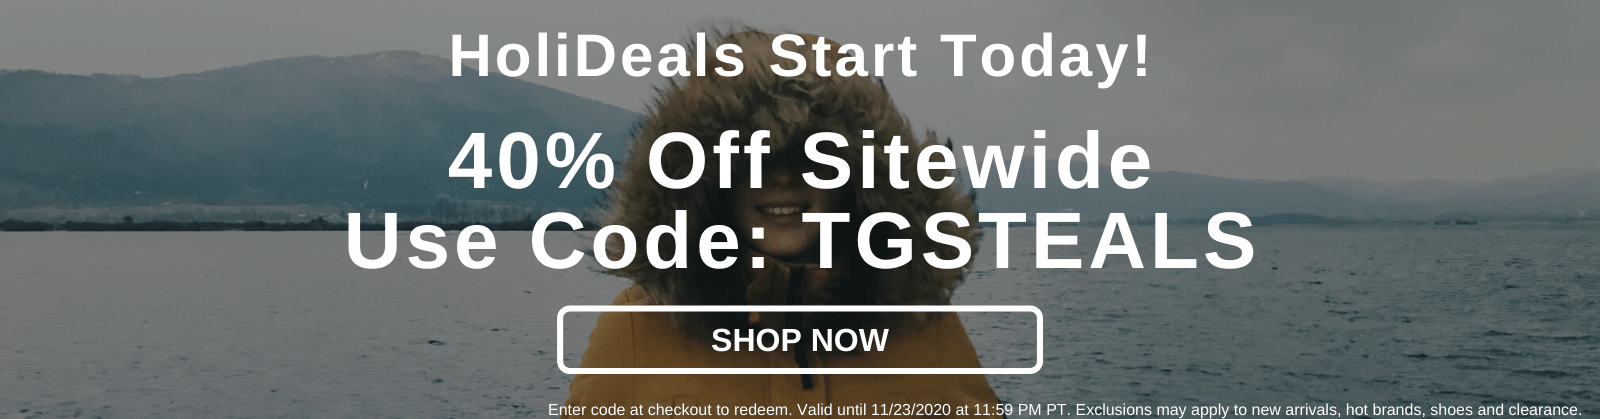 HoliDeals Start Today 40% Off Sitewide Use Code: TGSteals [Shop Now]